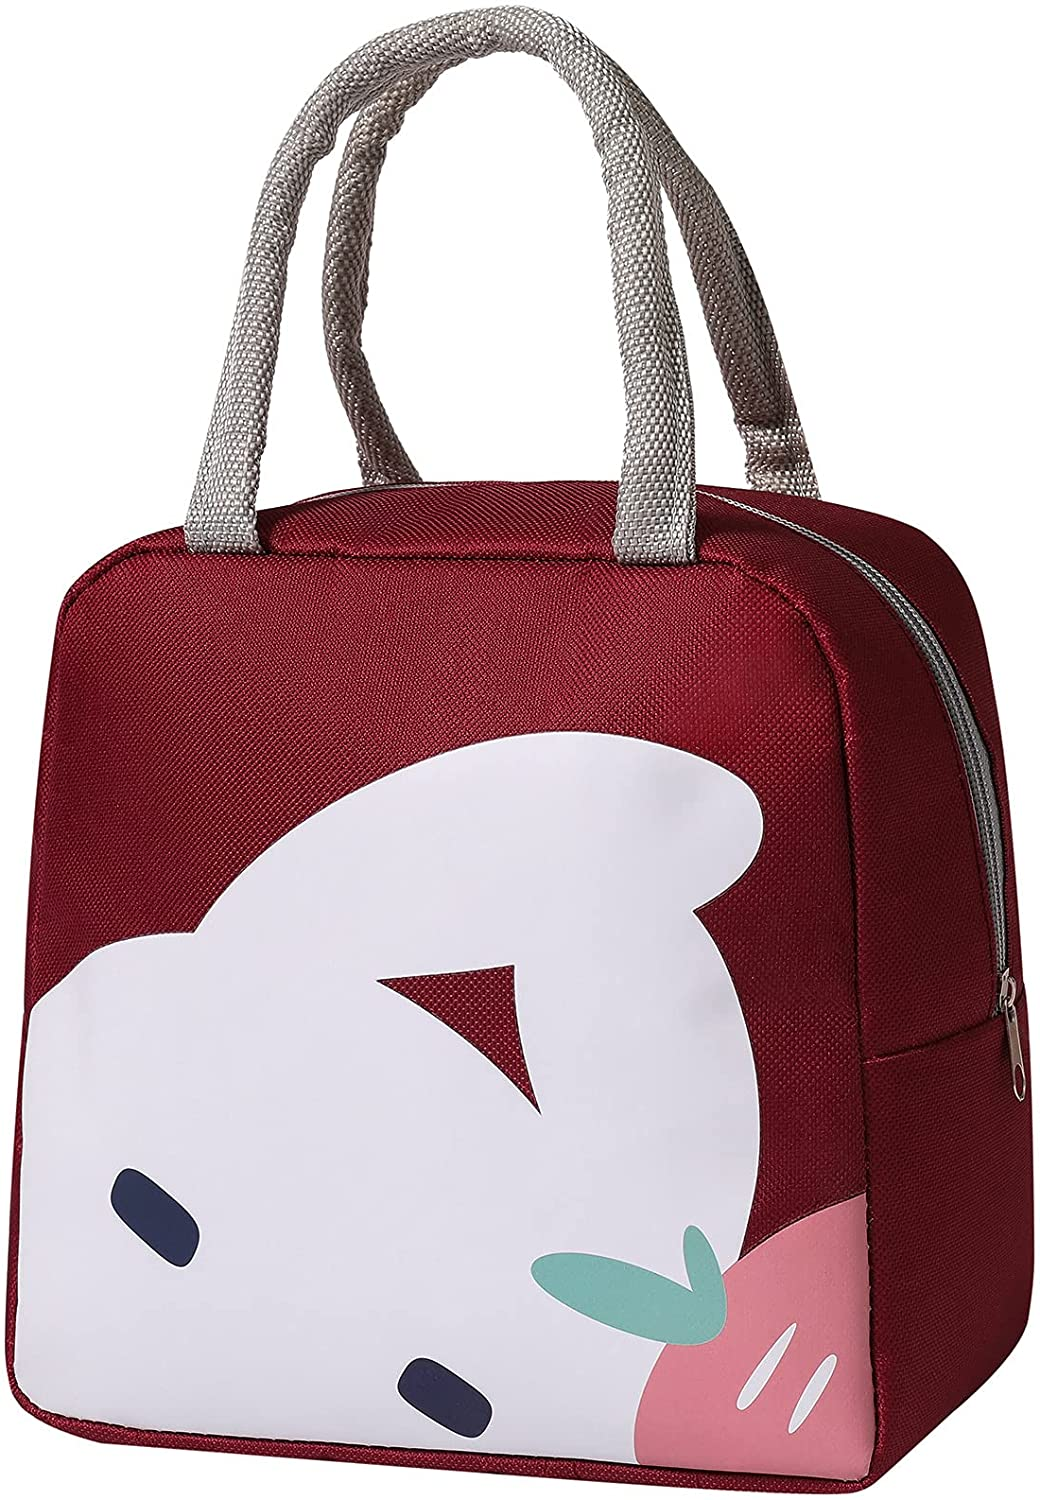 Mziart Cute Lunch Bags for Women, Cartoon Thermal Lunch Tote Bag Lunch Box Containers Cooler for Adult Boys Girls School Picnic Travel (Wine Red Rabbit)